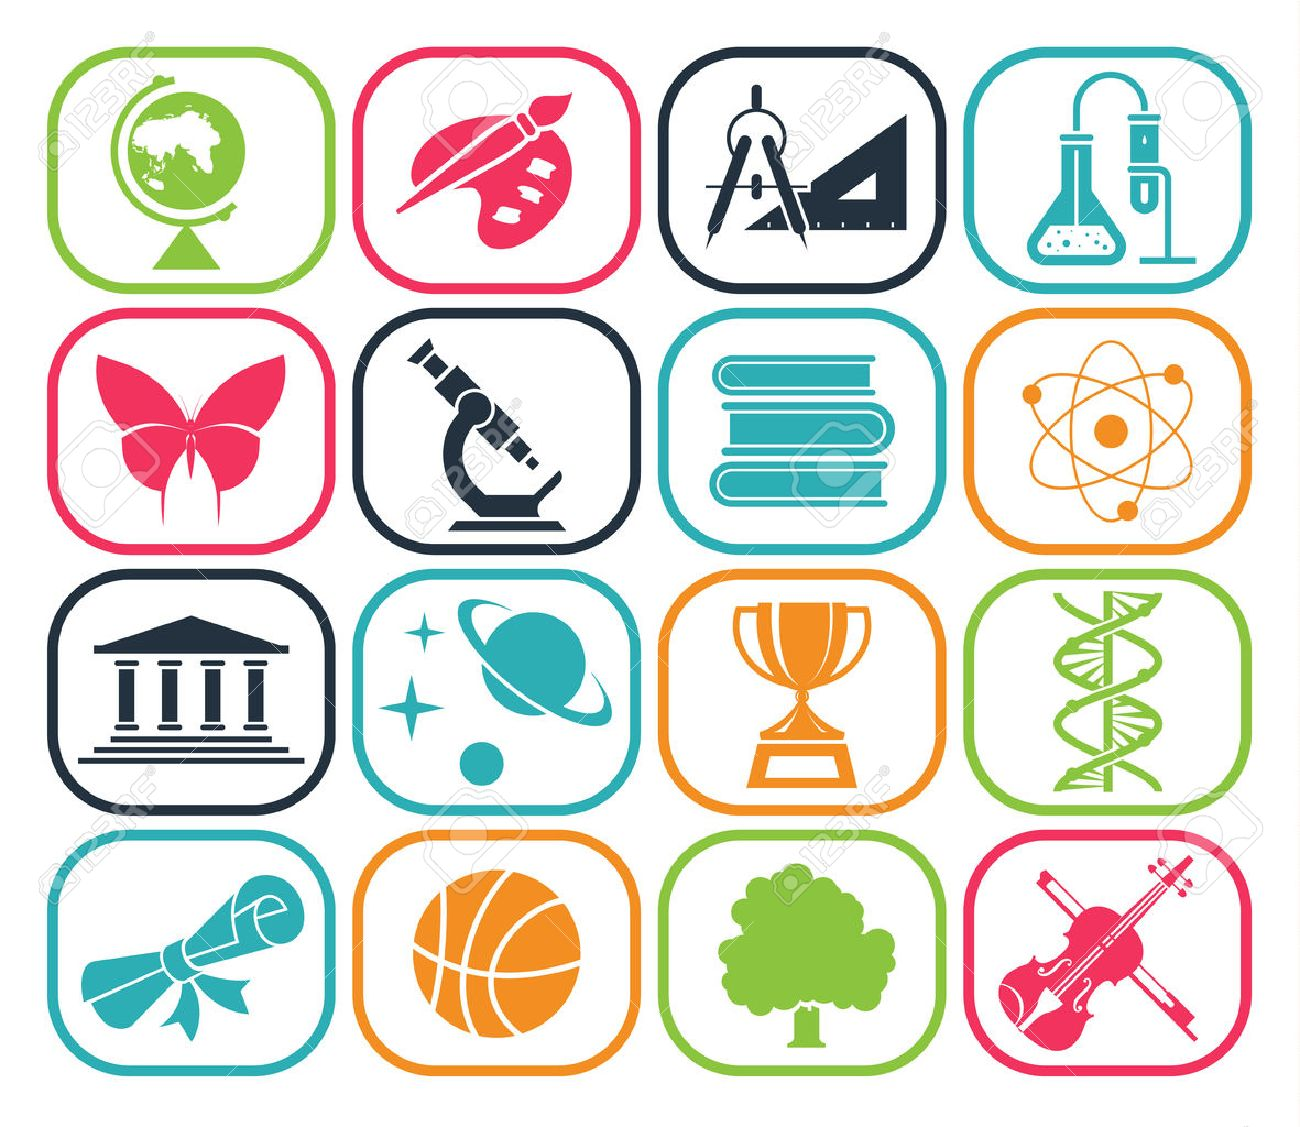 Collection of icons presenting different school subjects, science, art, history, geography, chemistry, maths, music, sports. Vector illustration. - 44249050